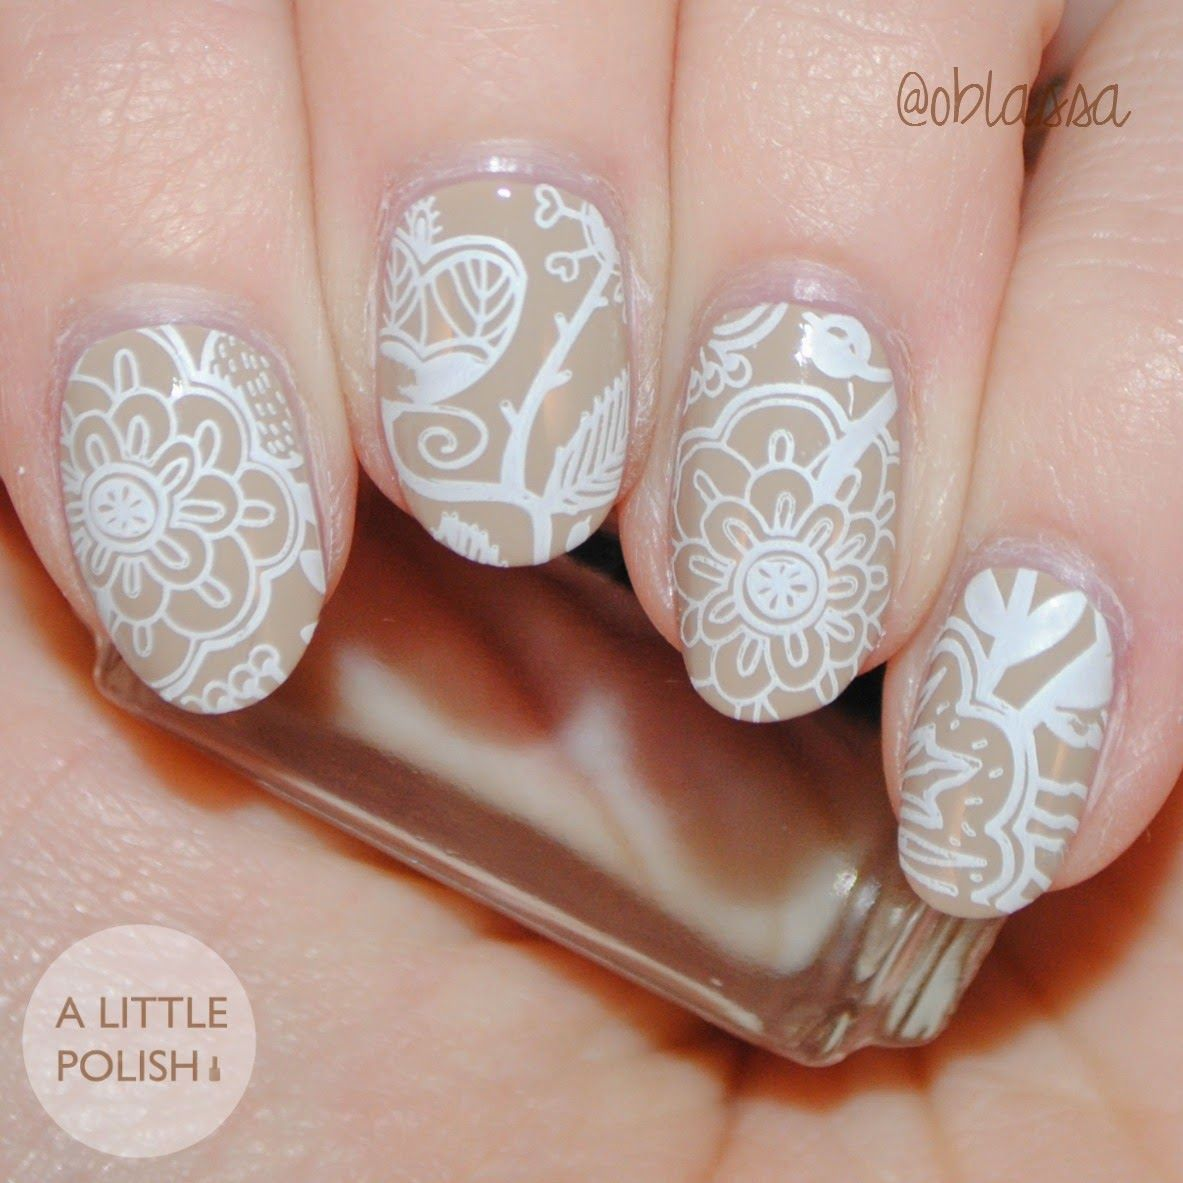 Born Pretty Store - Stamping Plate Review   Floral Stamping Nail Art ...